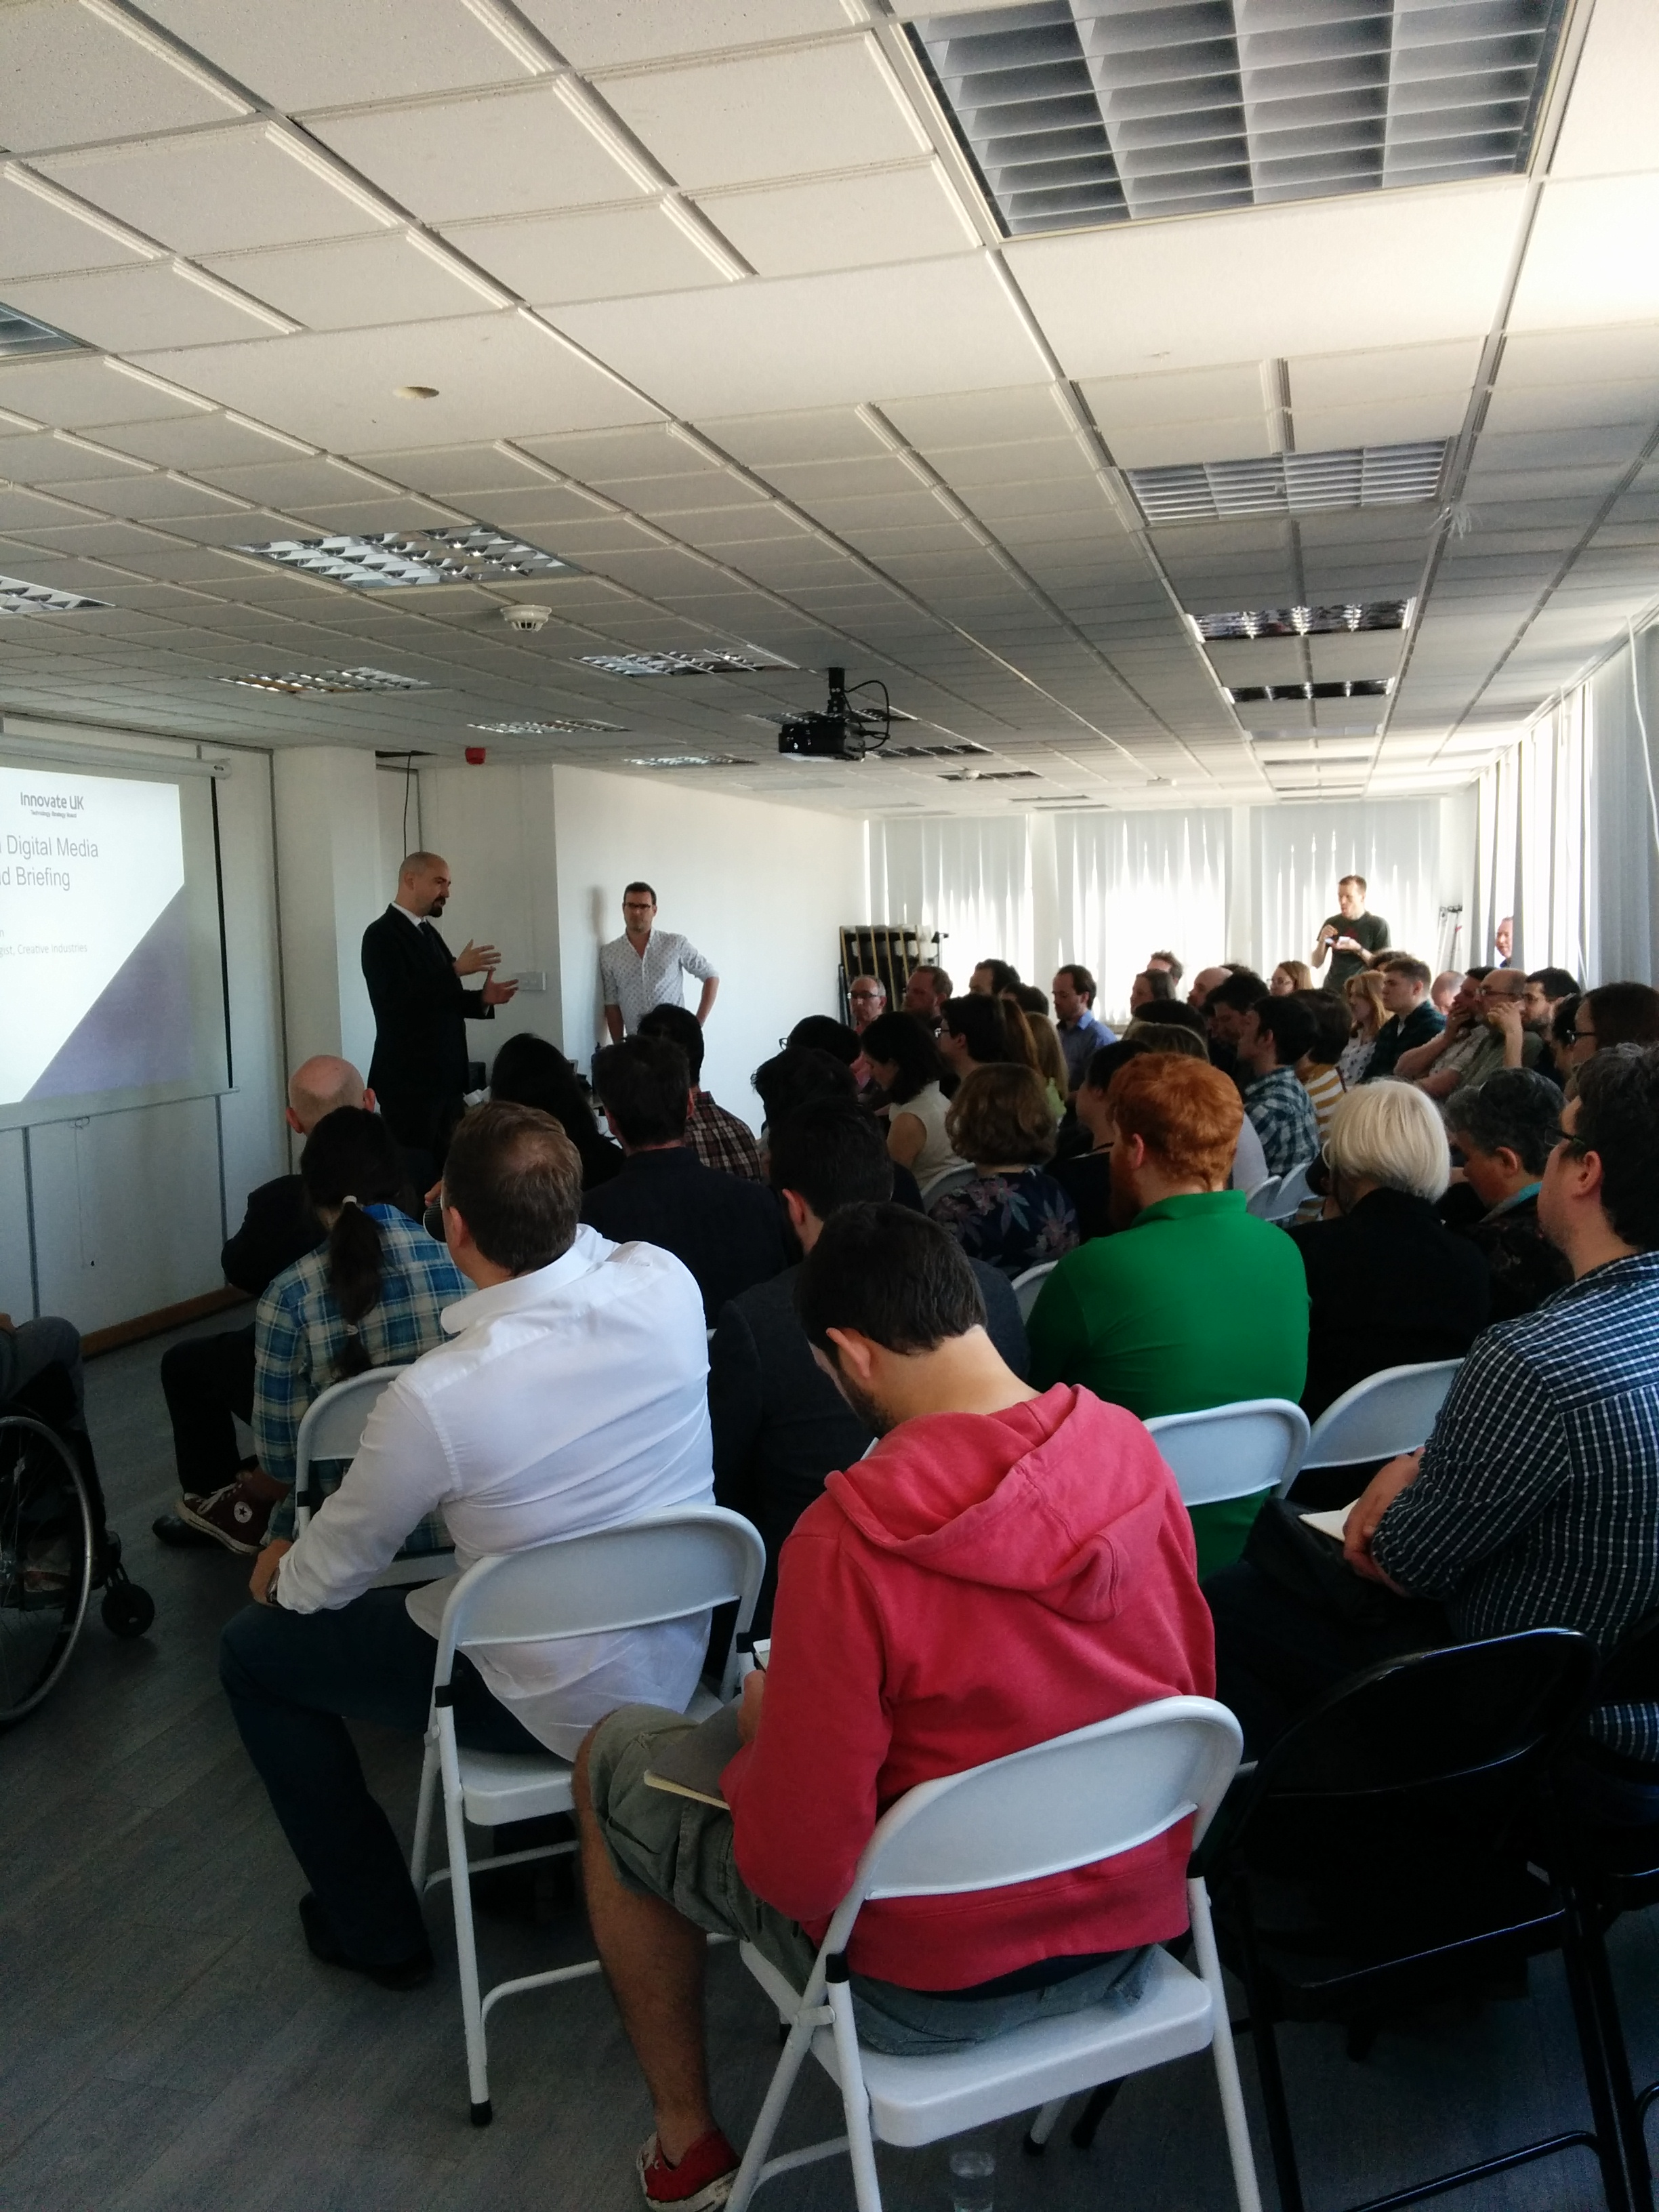 Full house of techies, creatives and entrepreneurs for our Digital Launchpad briefing